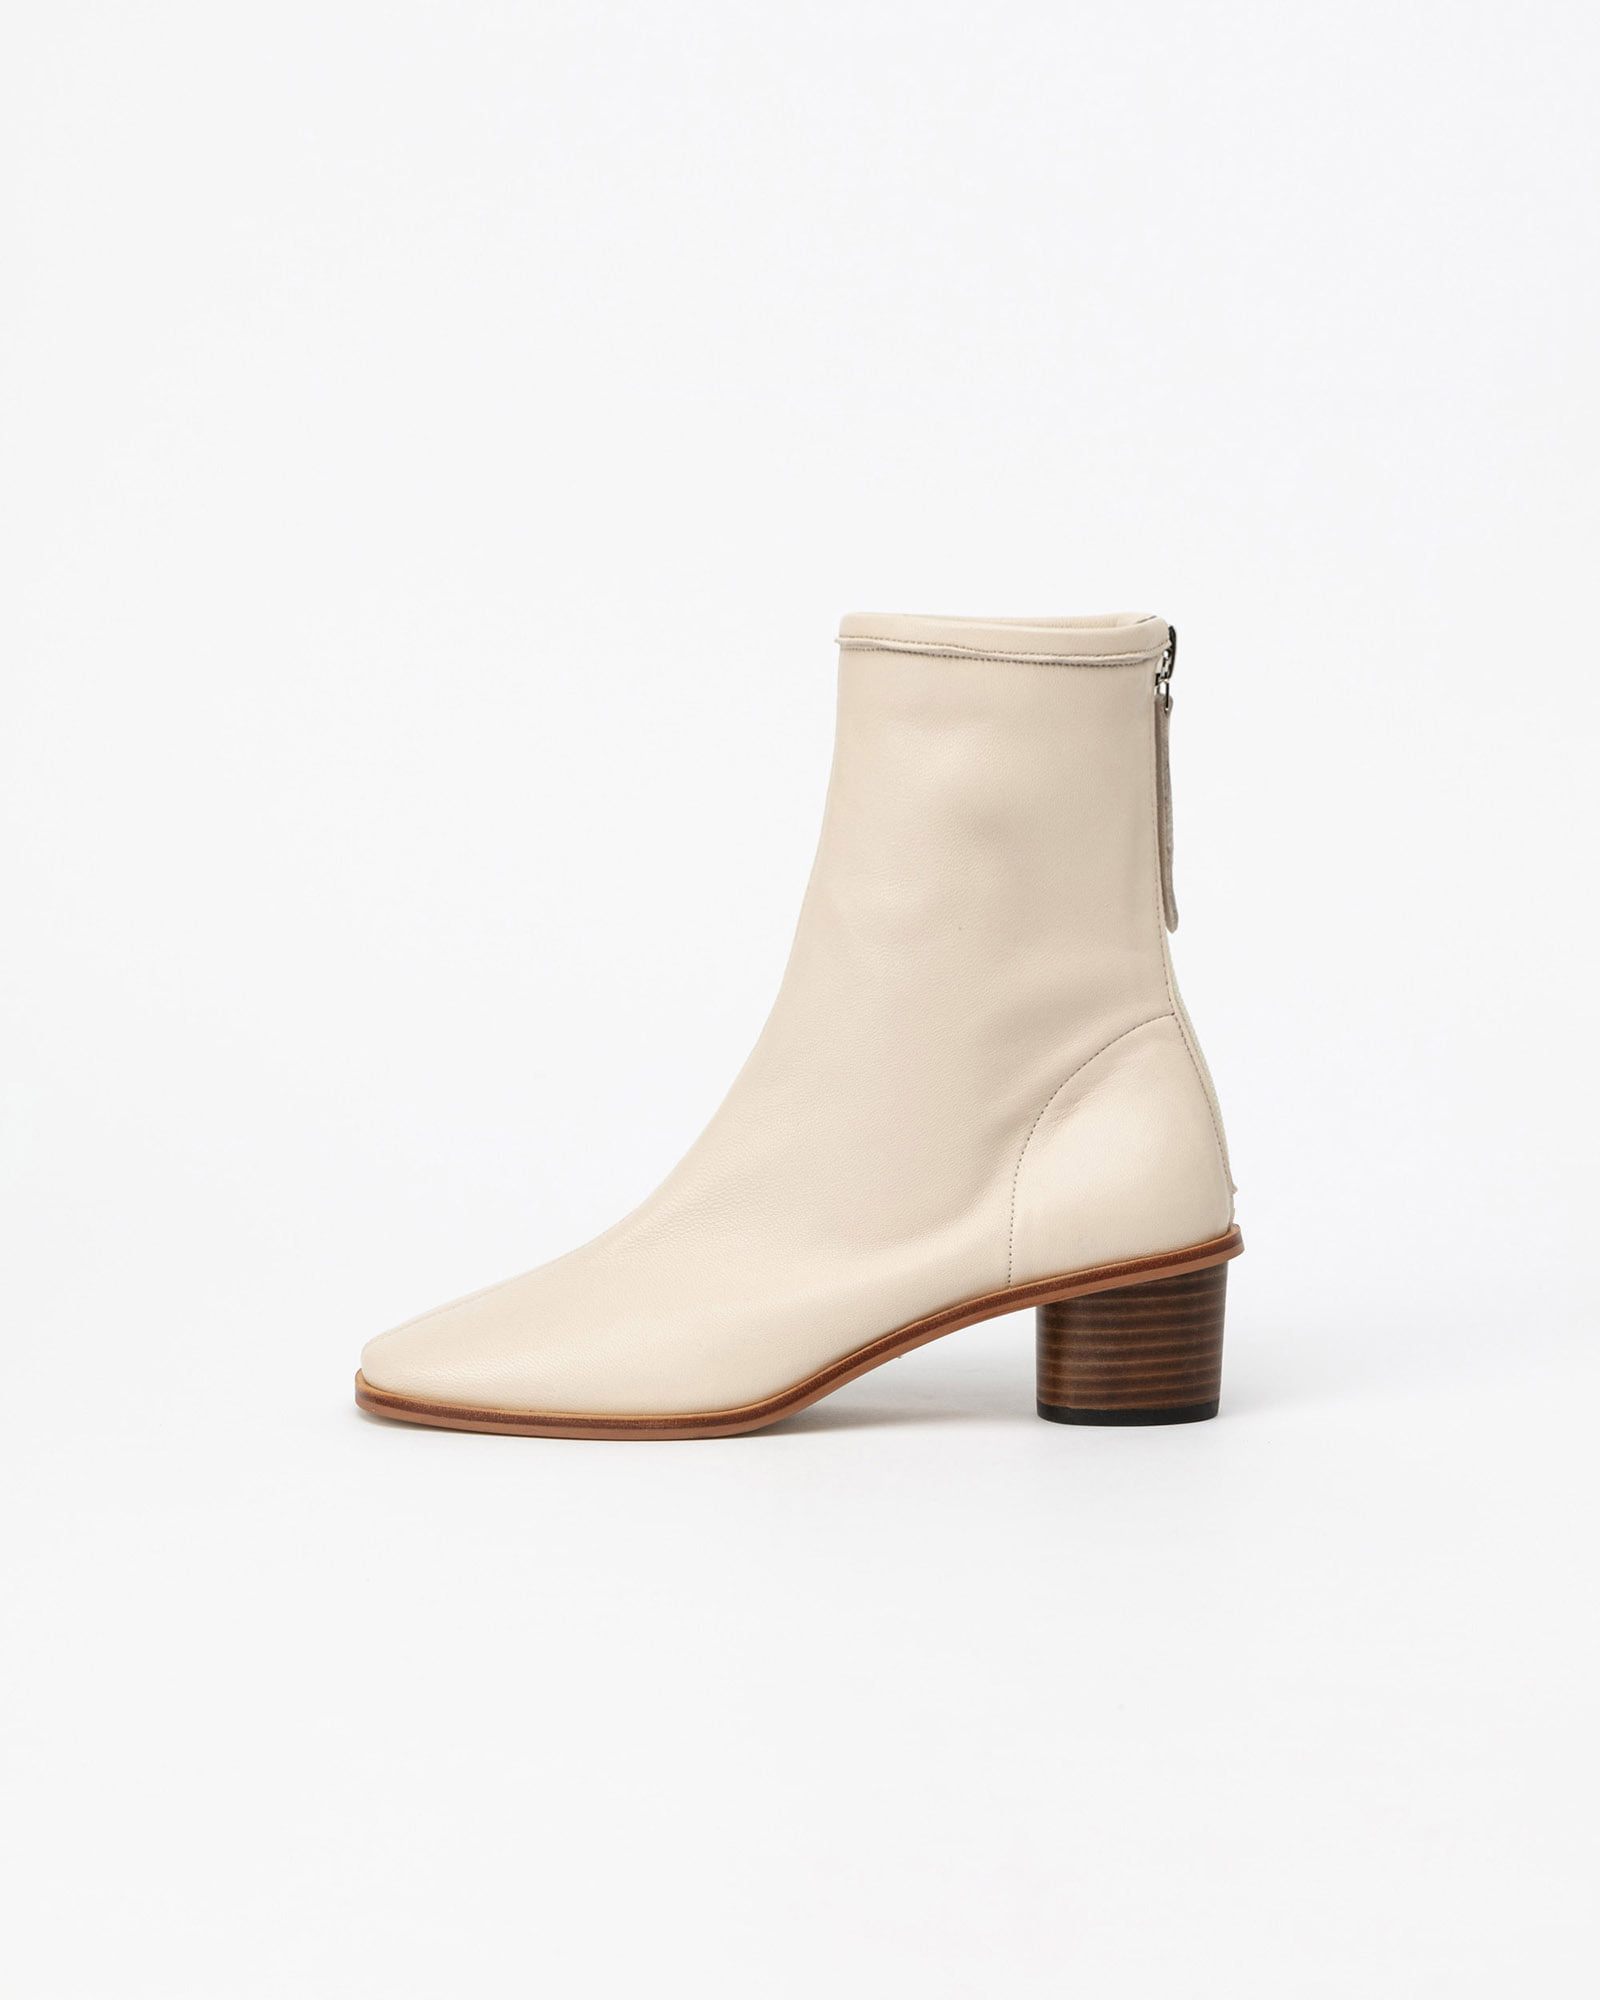 Souple Plus Super Soft Boots in Ivory